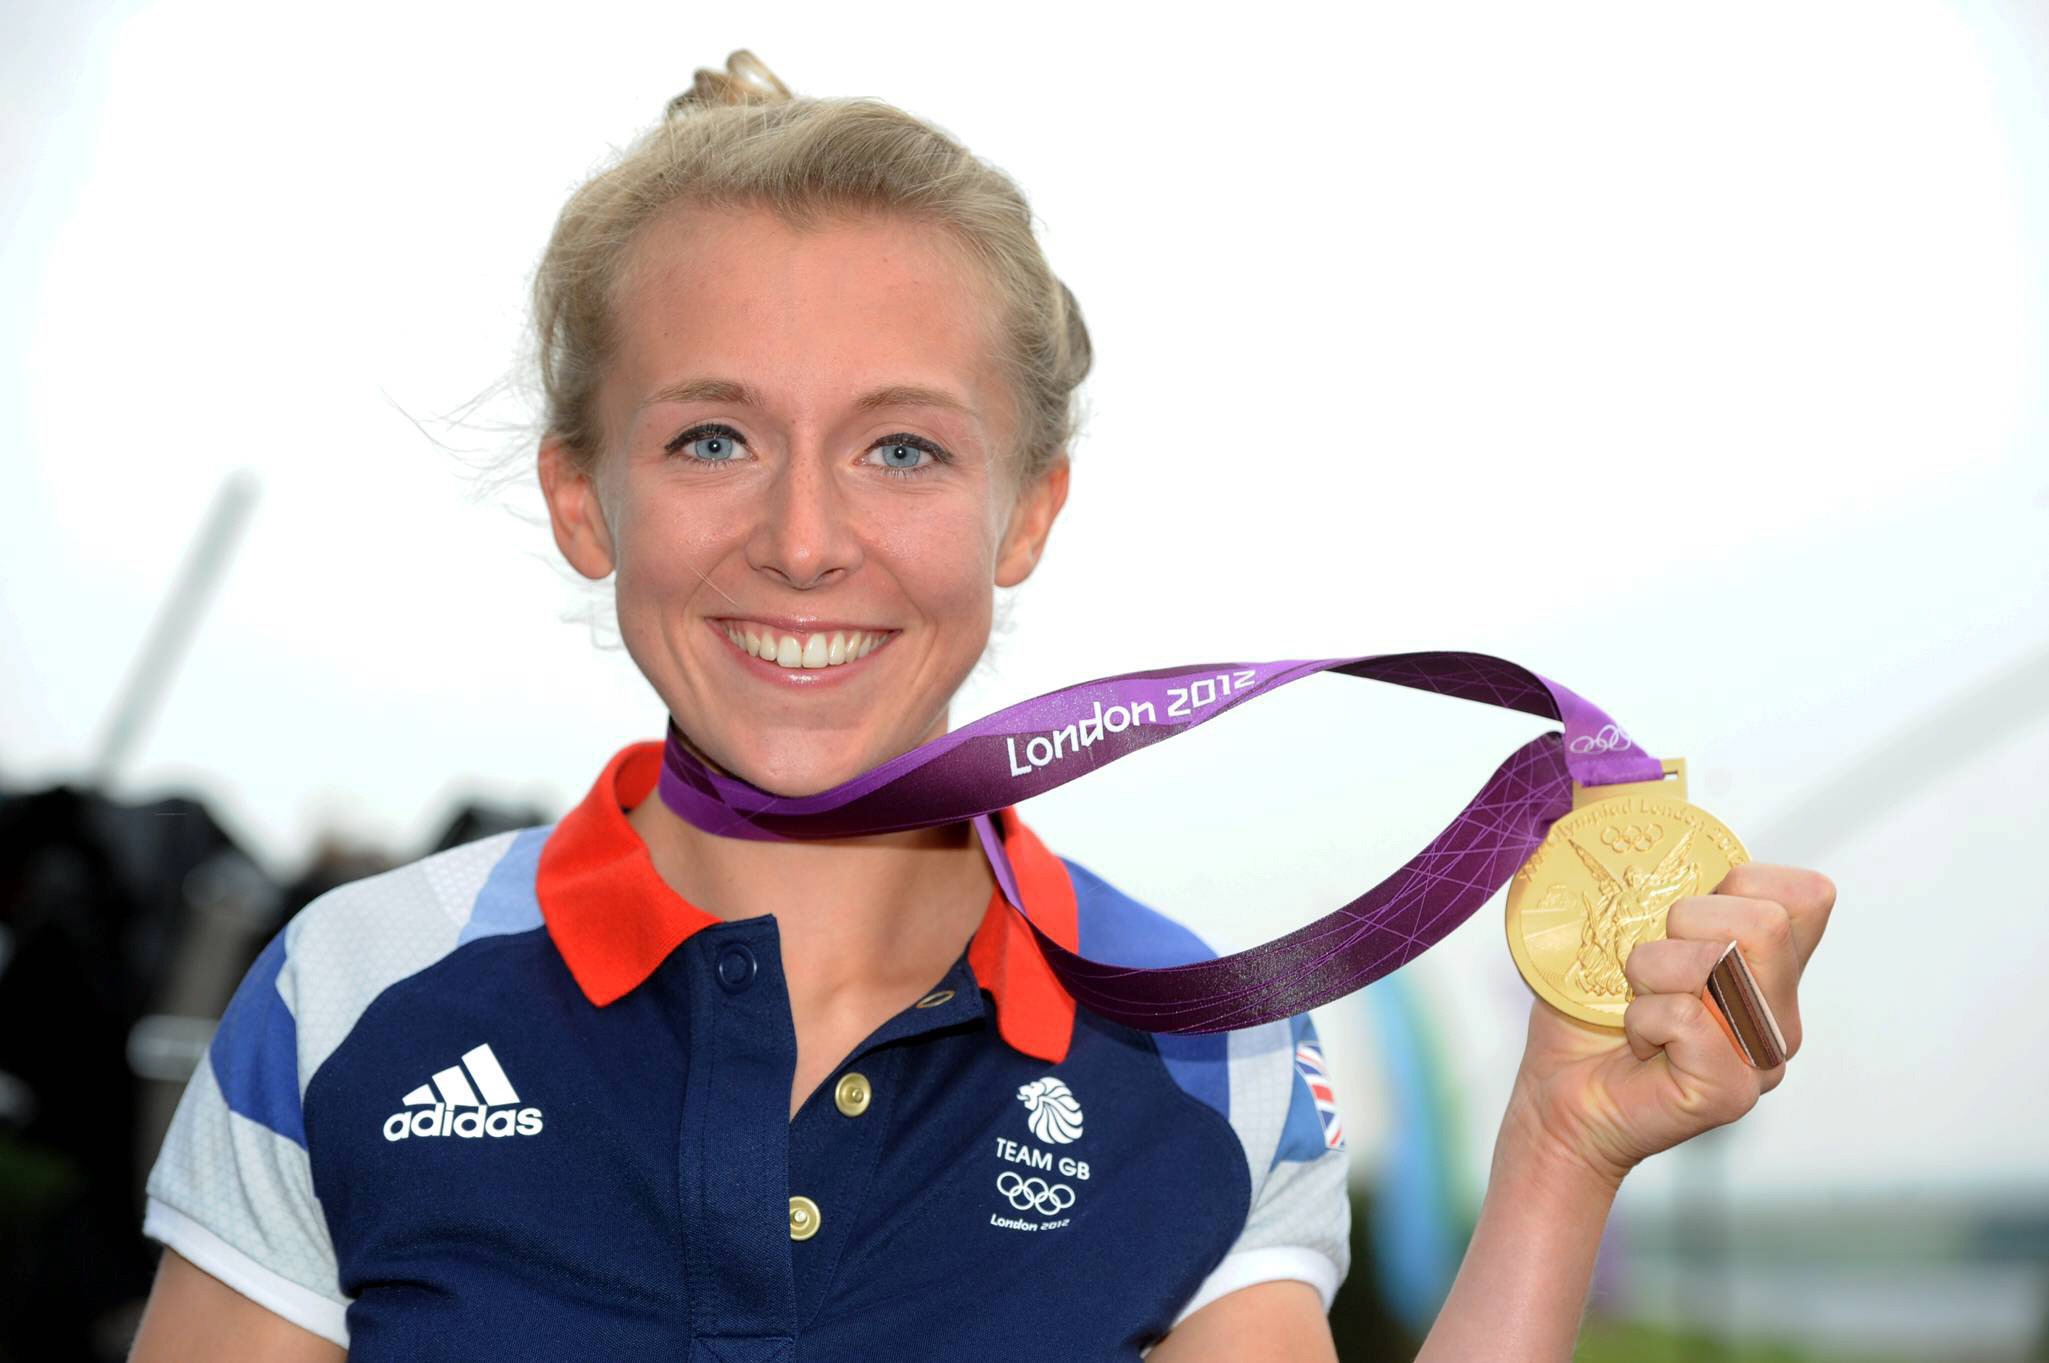 OLYMPIC DREAM: Kat Copeland is hoping to make a successful defence of her lightweight double title at the Rio Olympics in 2016